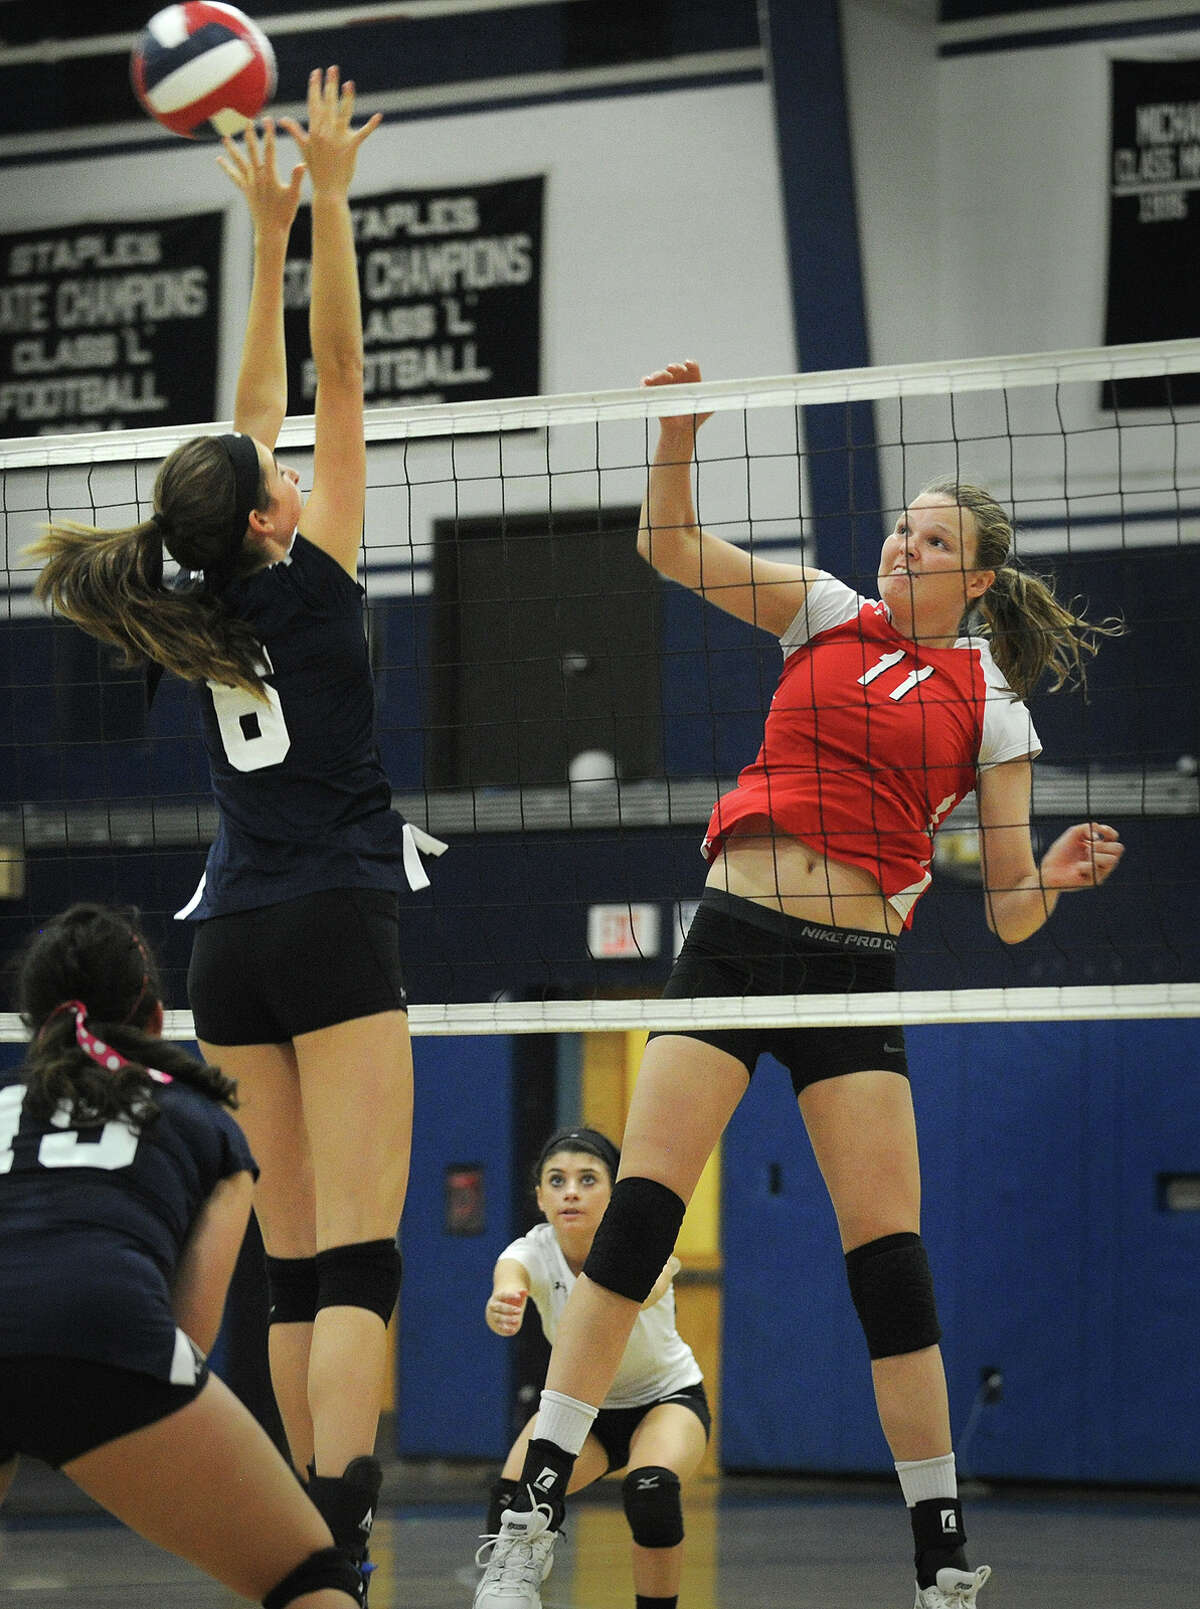 Greenwich's Abbie Wolf, right, spikes the ball off the block of Staples' Reece Schachne during their FCIAC girls volleyball match at Staples High School in Westport, Conn. on Monday, September 29, 2014.